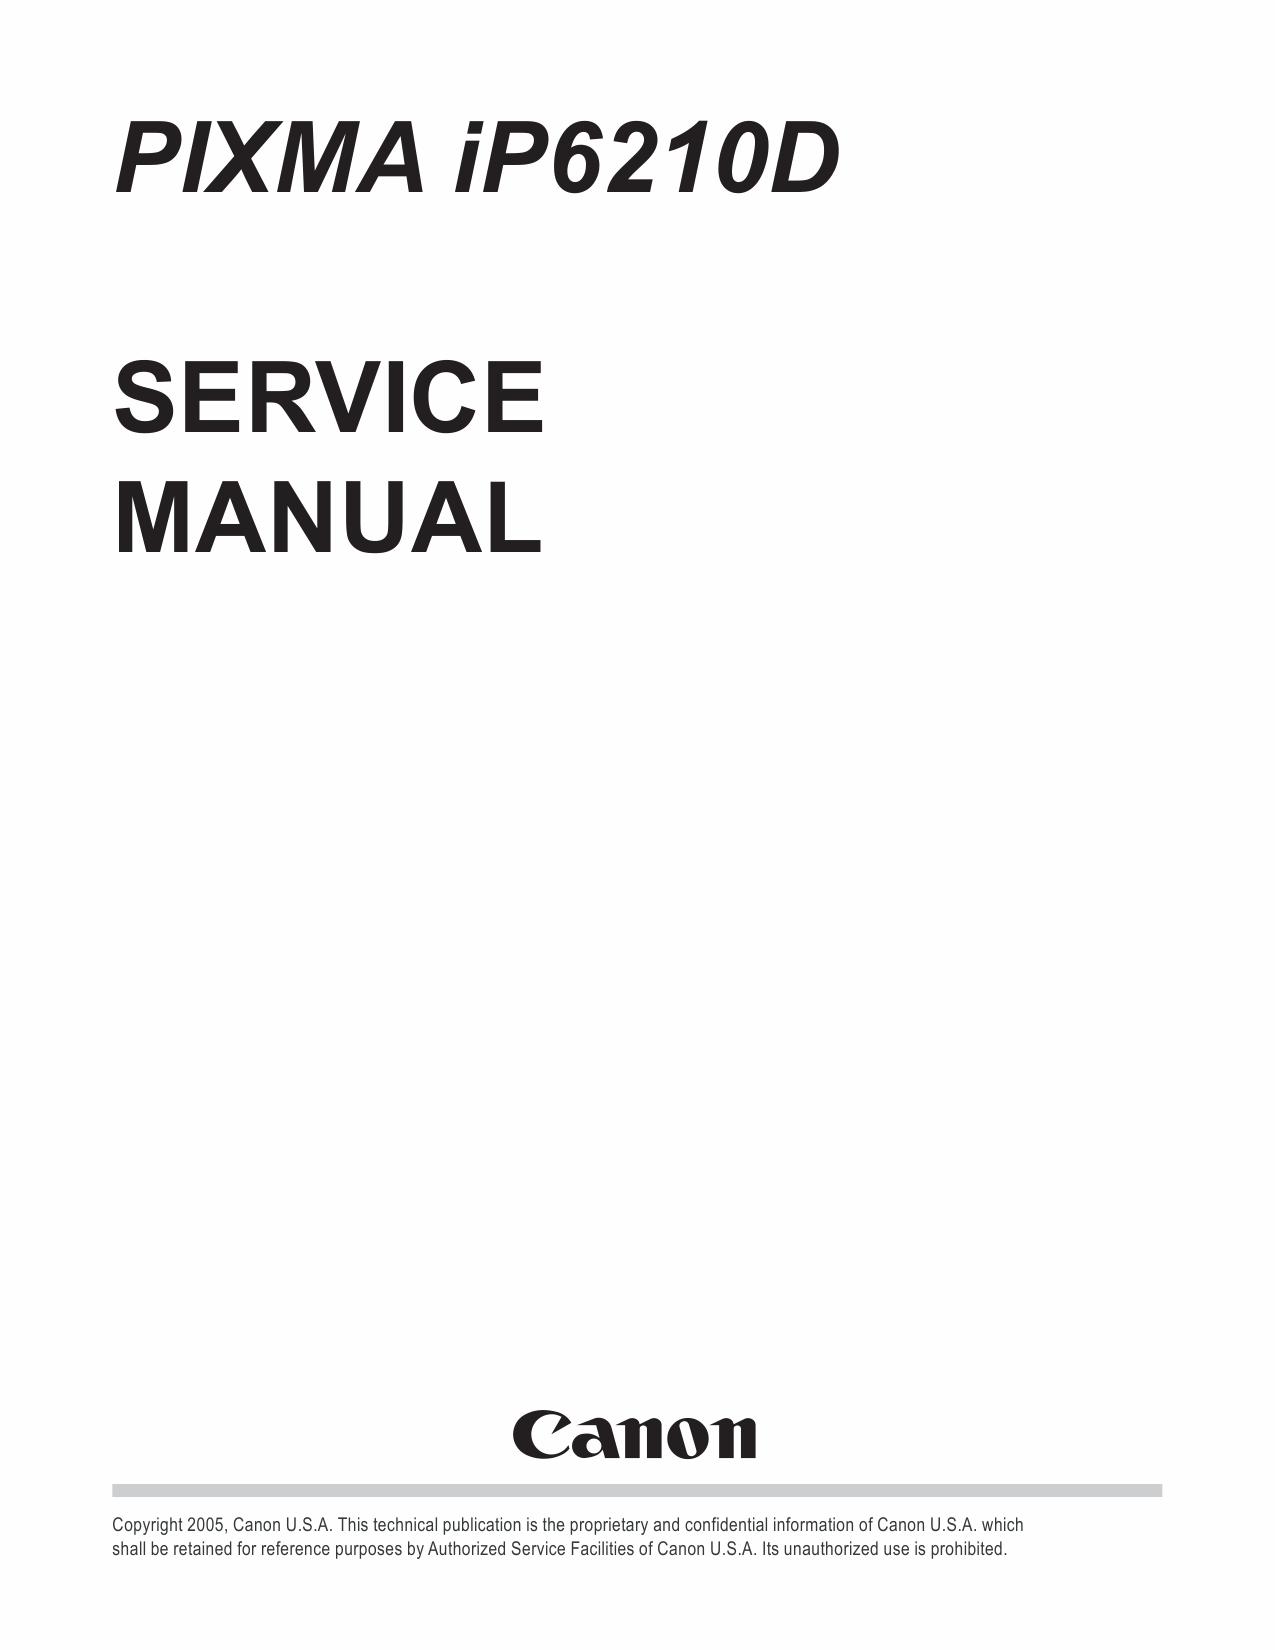 CANON PIXMA IP6210D IP 6210 D SERVICE & REPAIR MANUAL